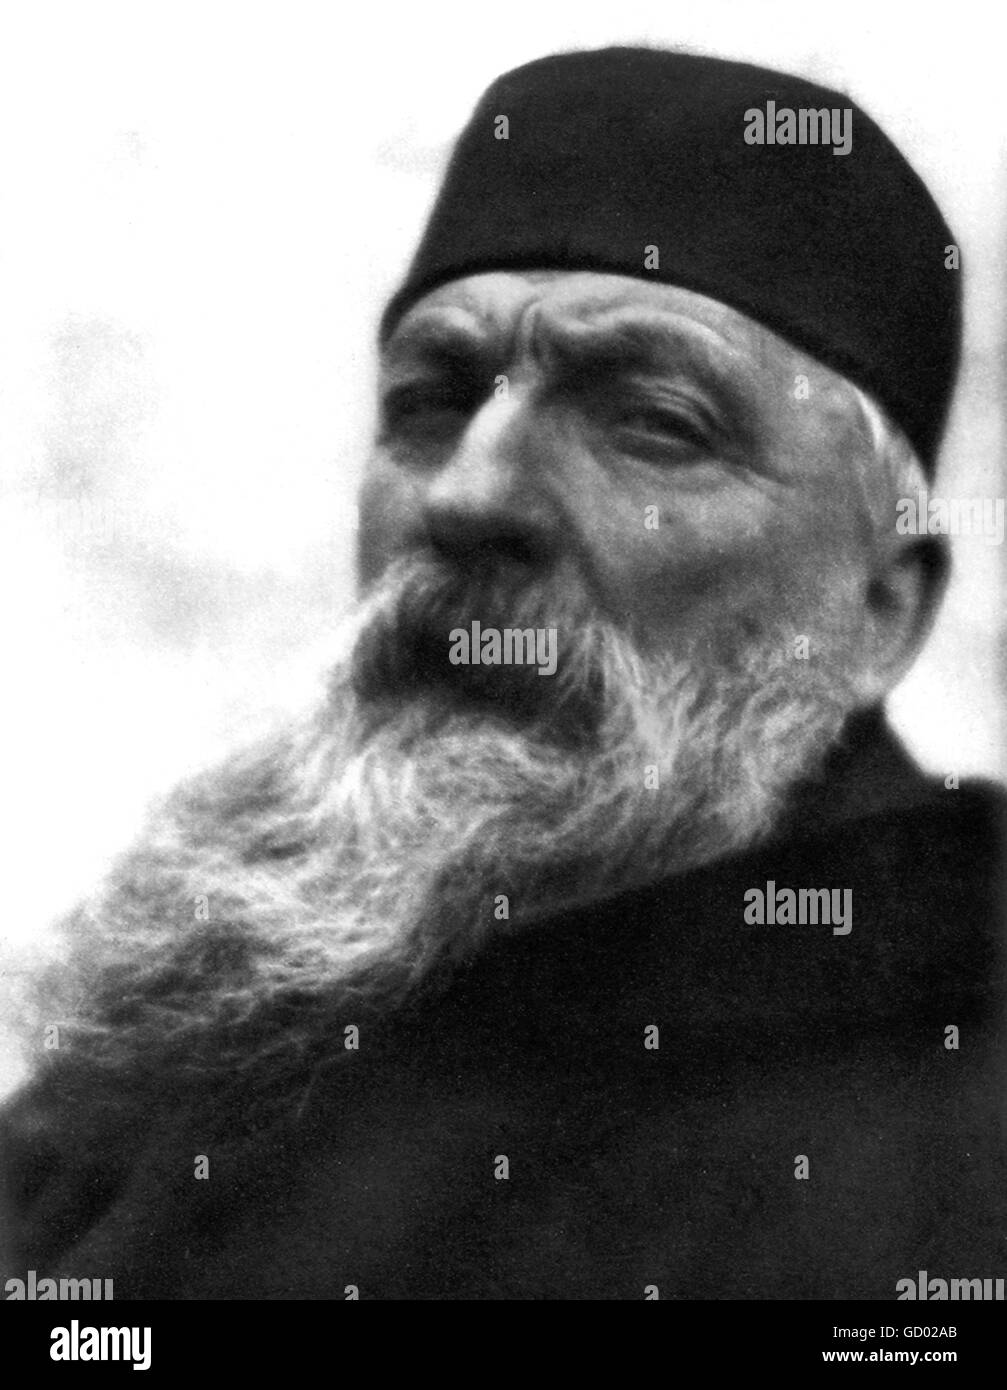 Auguste Rodin. Portrait of the French sculptor Auguste Rodin (François Auguste René Rodin: 1840-1917) - Stock Image